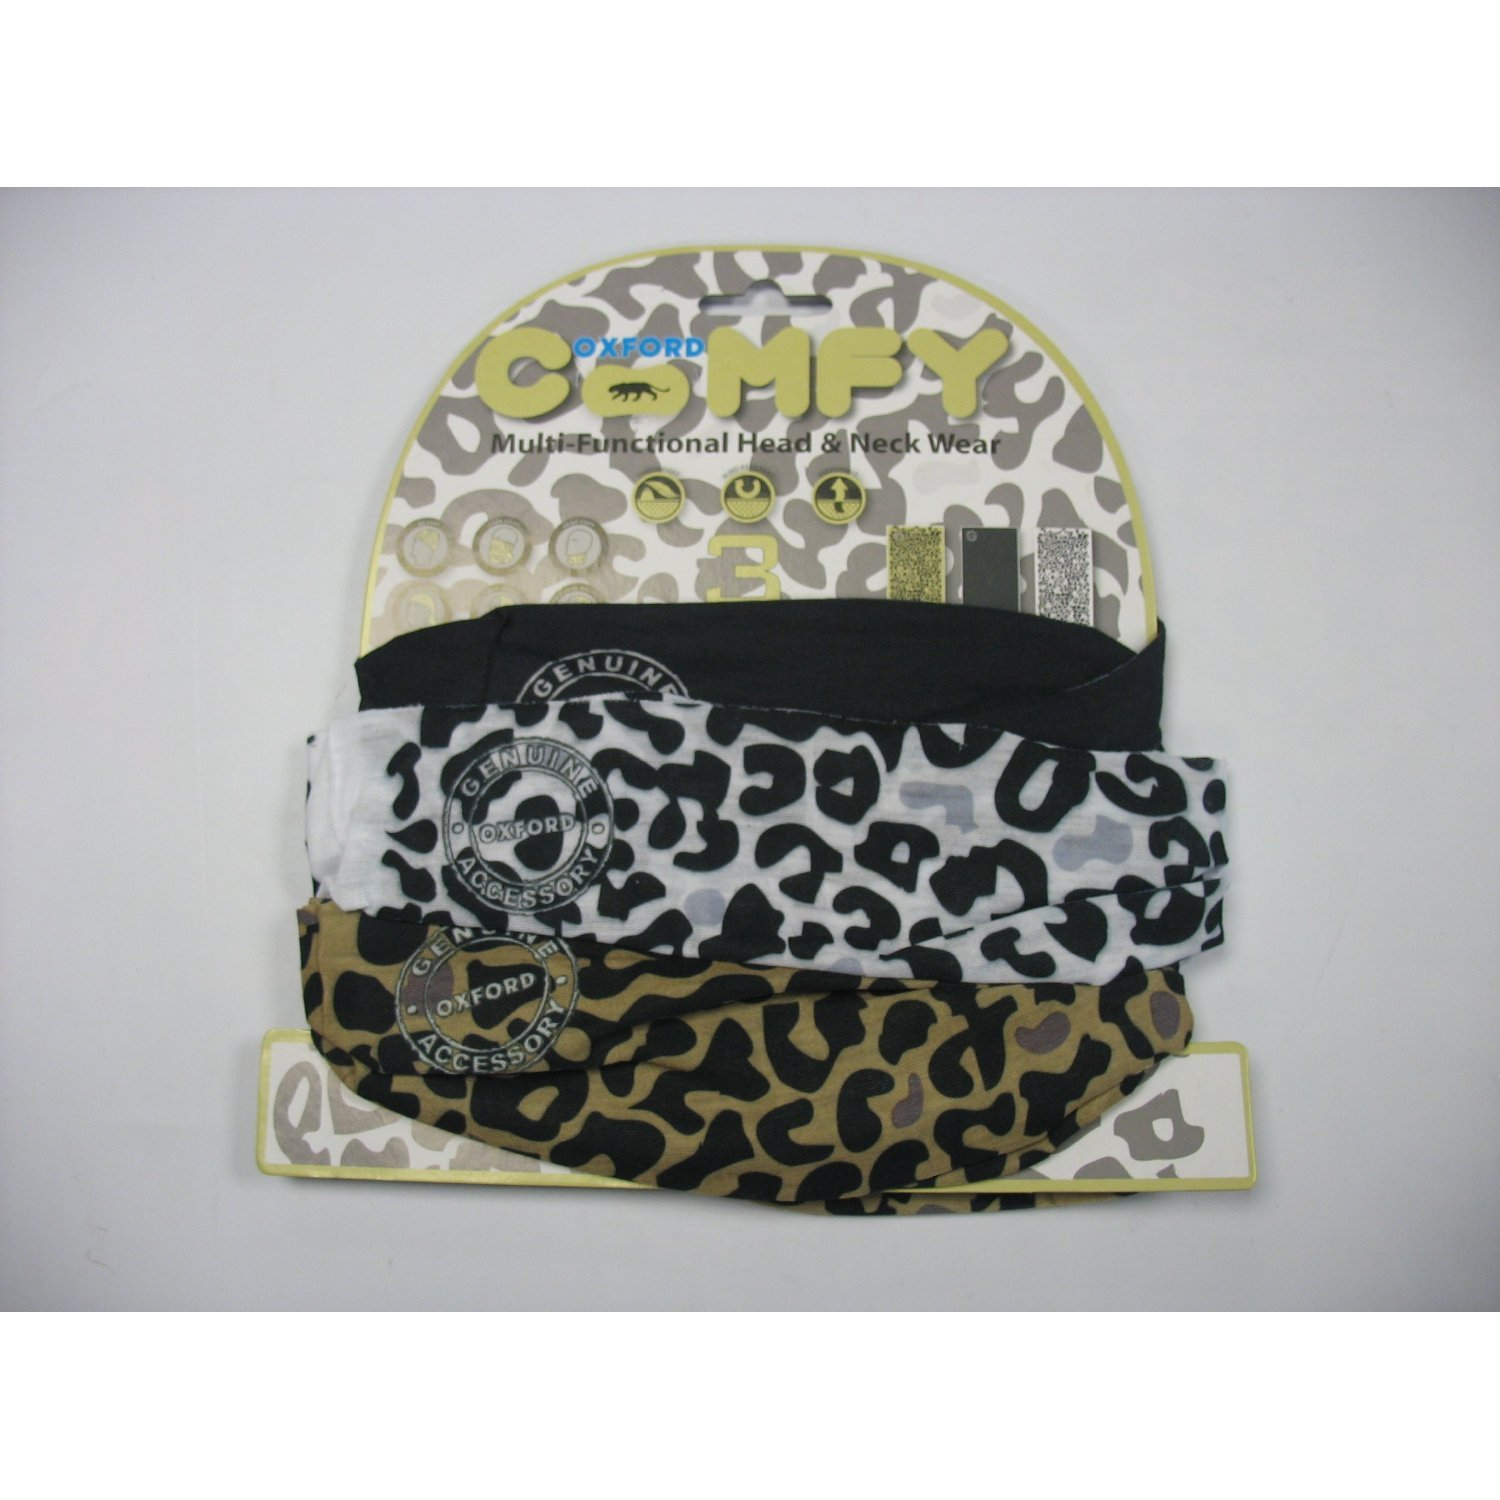 Oxford Comfy Head Helmet Scarf Neck Warmer Base Layers Leopard Design 3 Pack